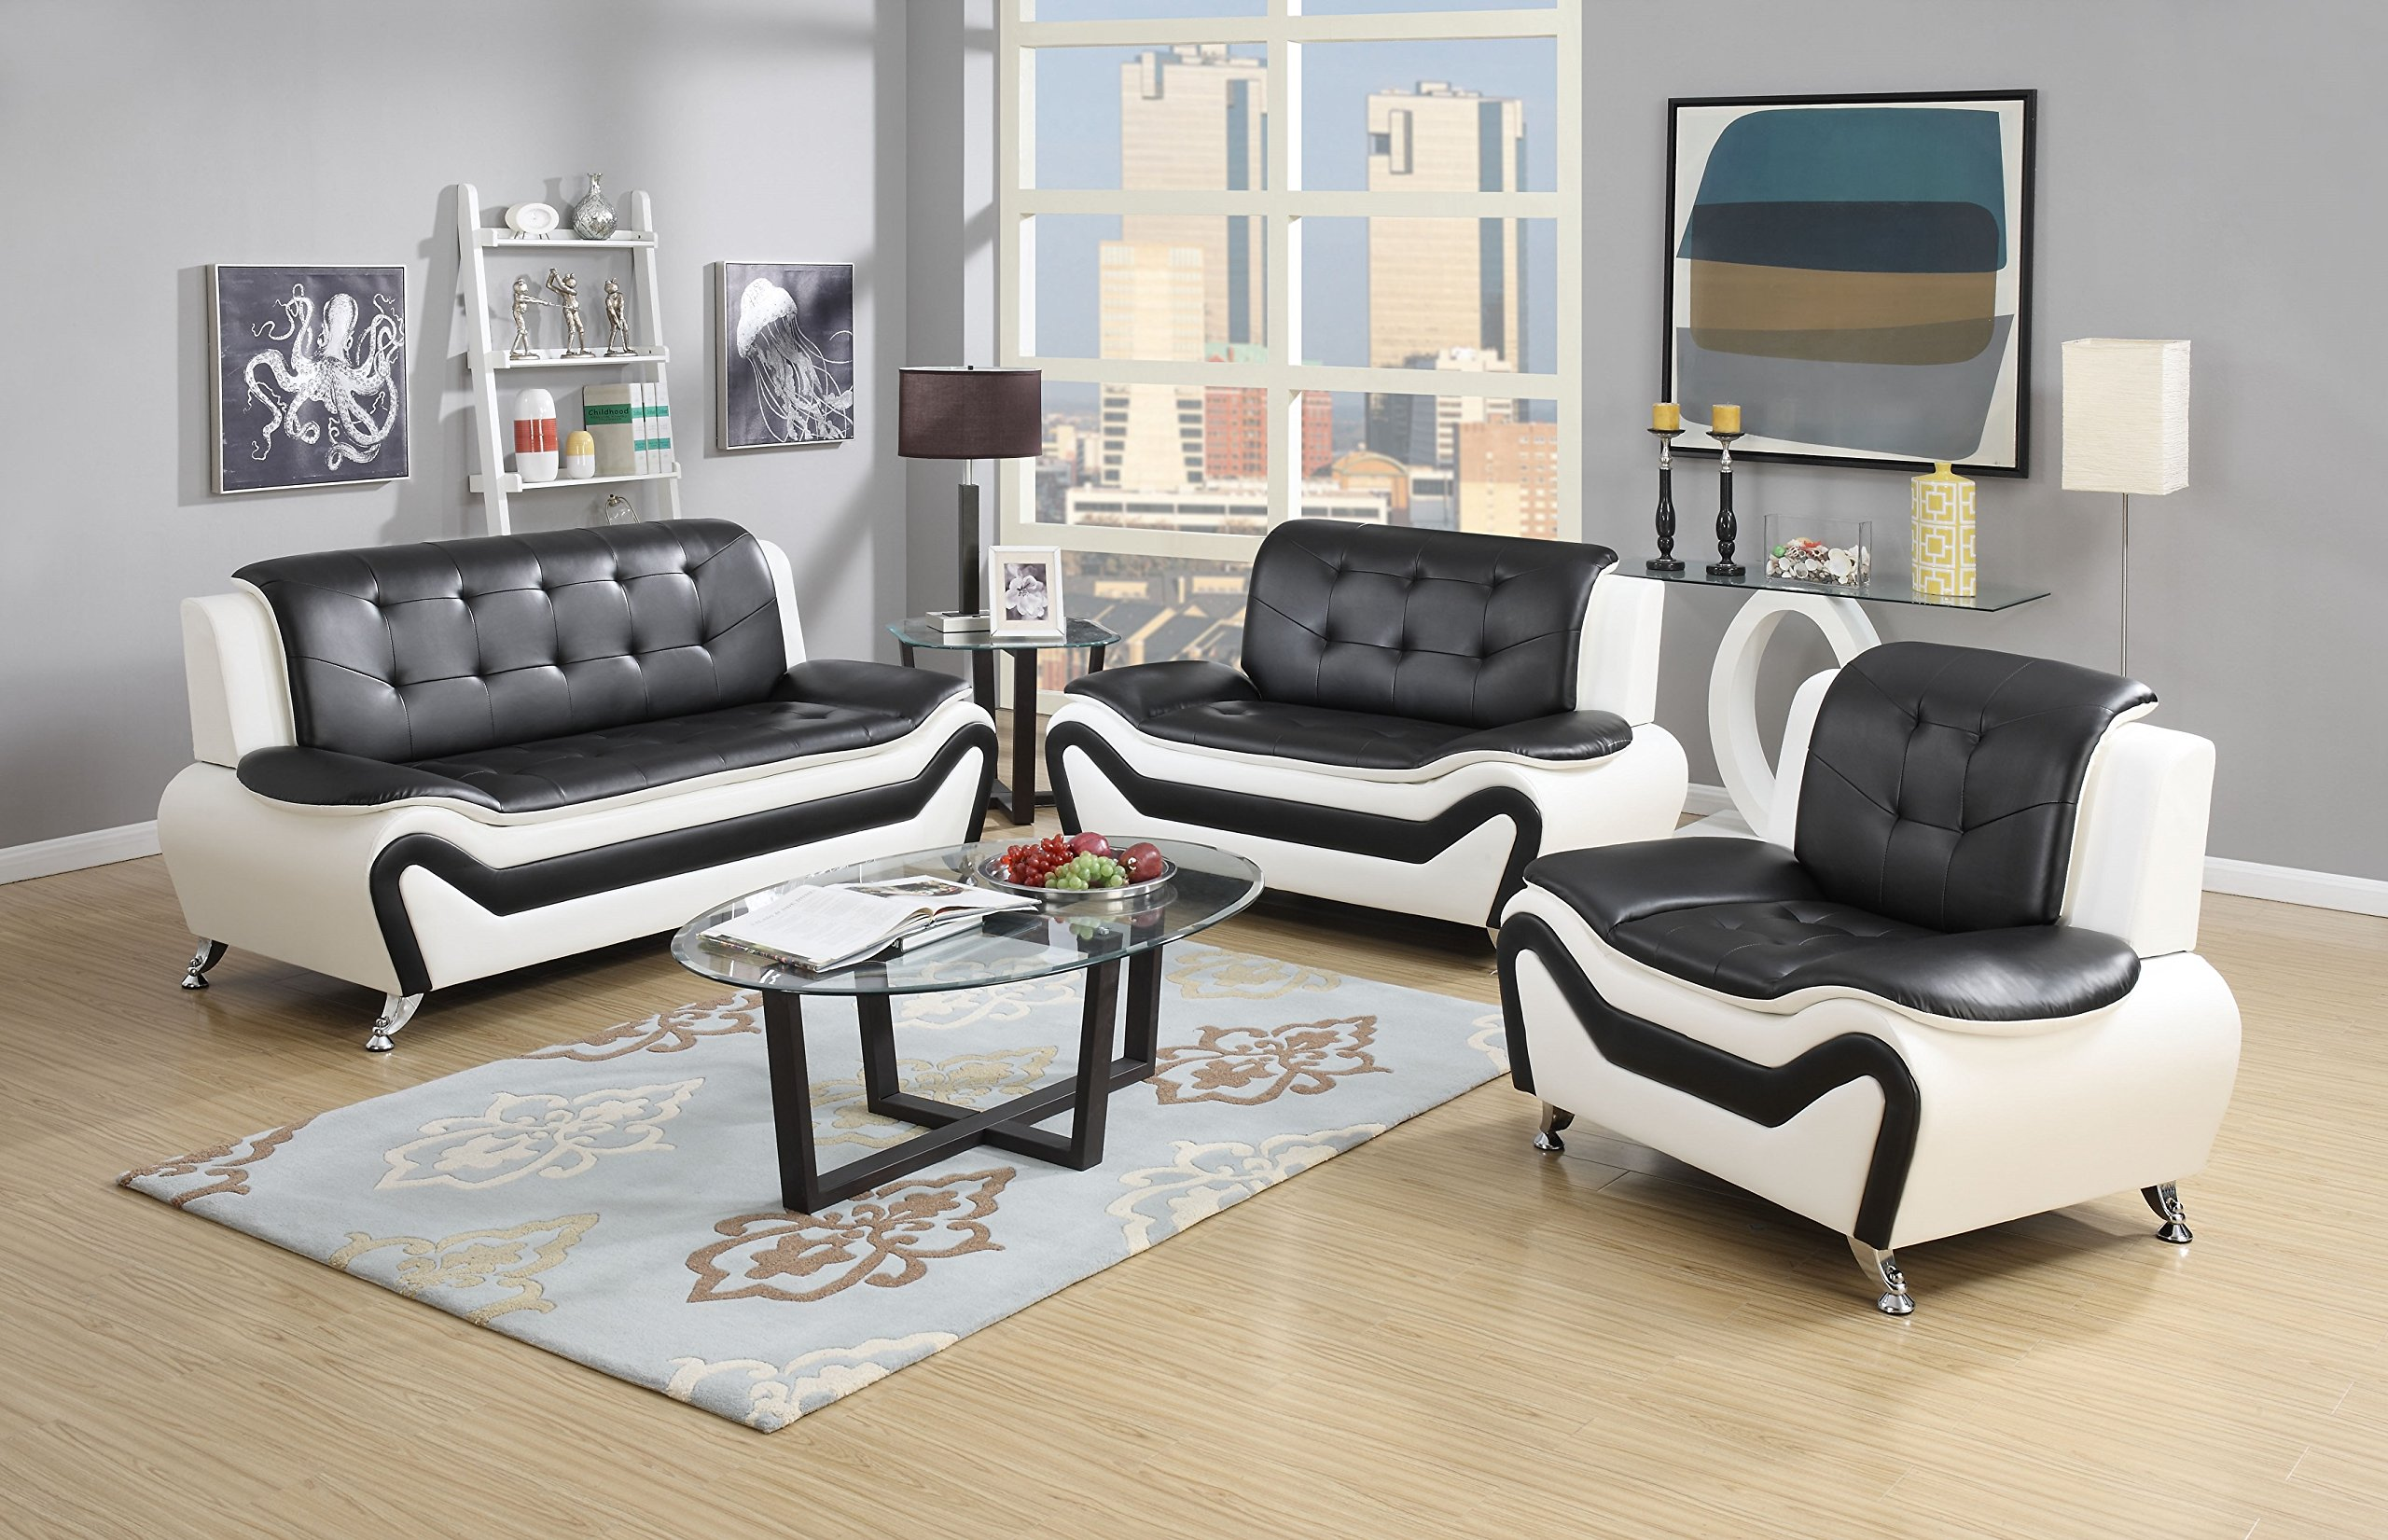 US Pride Furniture 3 Piece Modern Bonded Leather Sofa Set with Sofa, Loveseat, and Chair, White/Black by US Pride Furniture